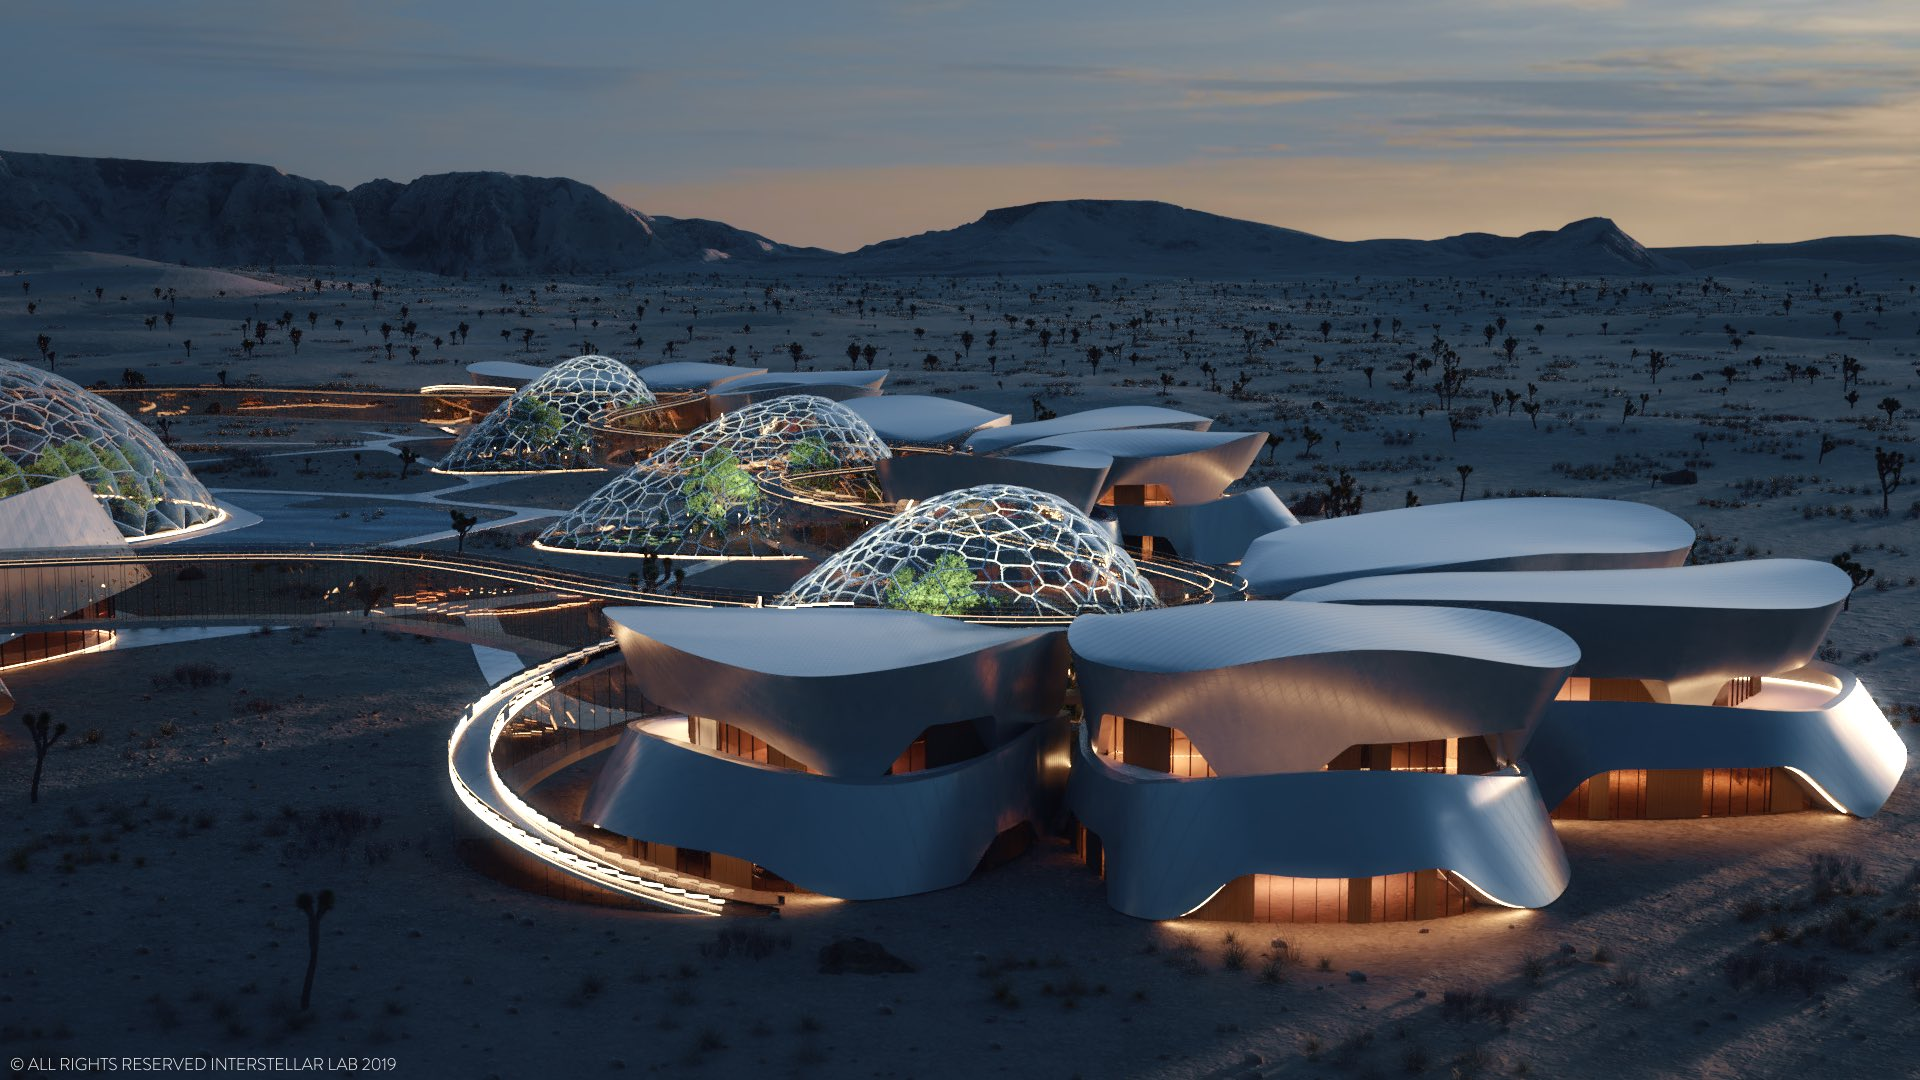 Rendering of space-like settlement in the Mojave Desert, with Mars conditions